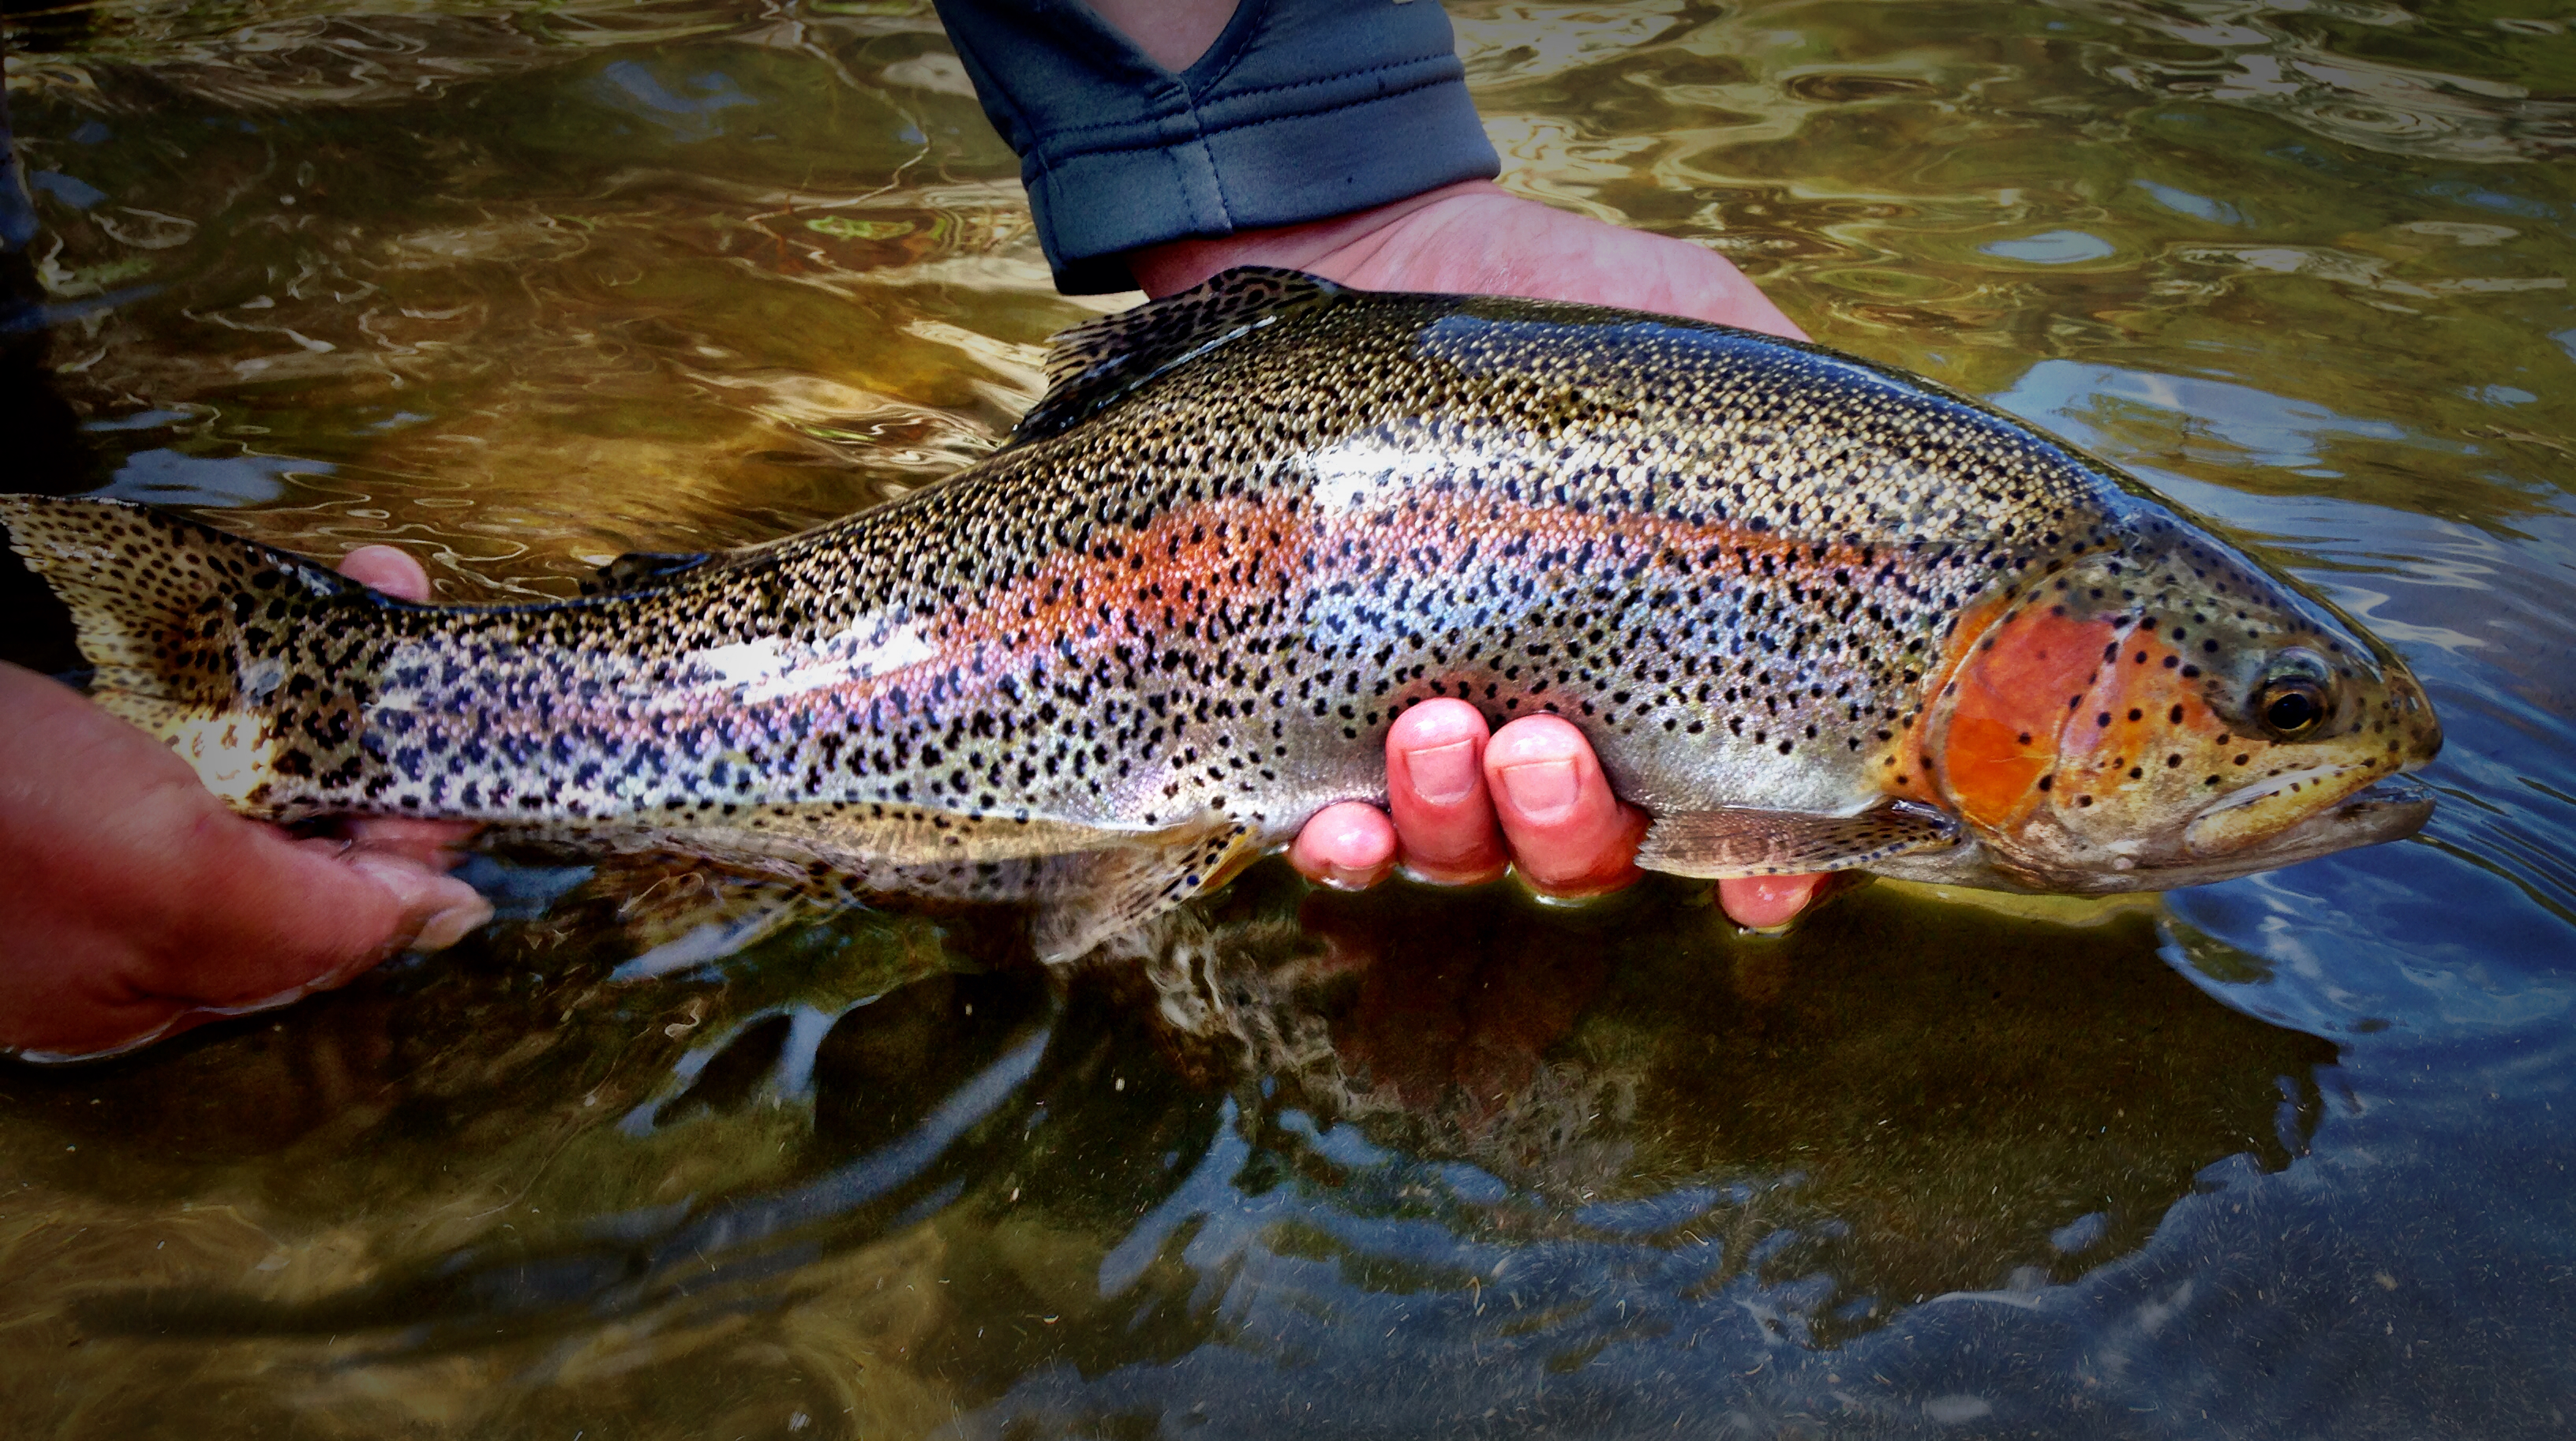 Guided fly fishing descriptions rates 5280 angler for Denver fly fishing guides